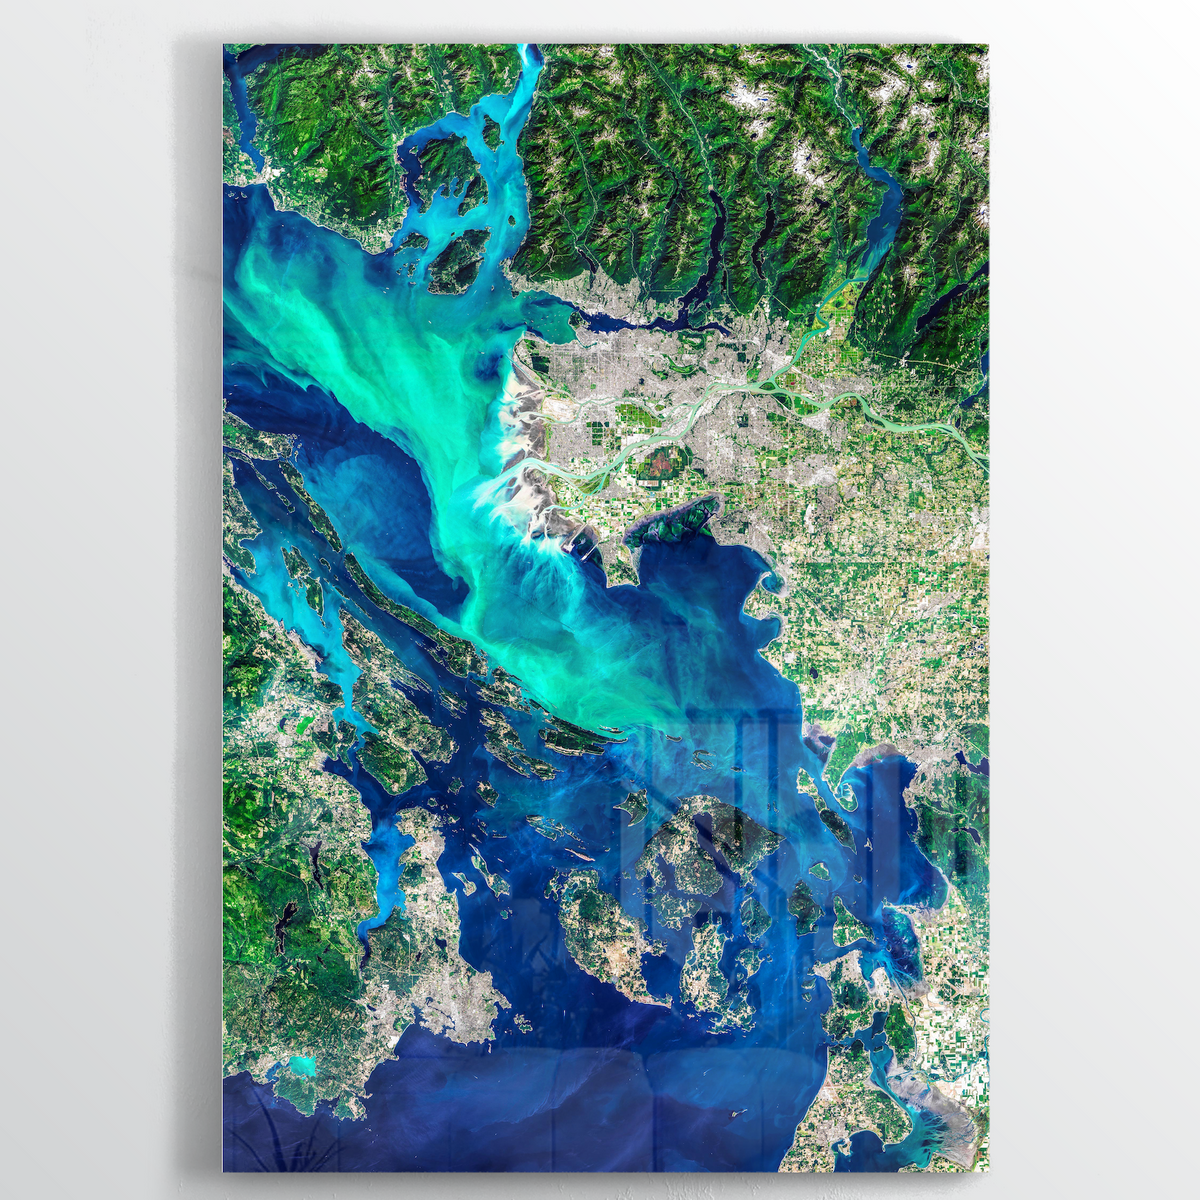 Vancouver Earth Photography - Floating Acrylic Art